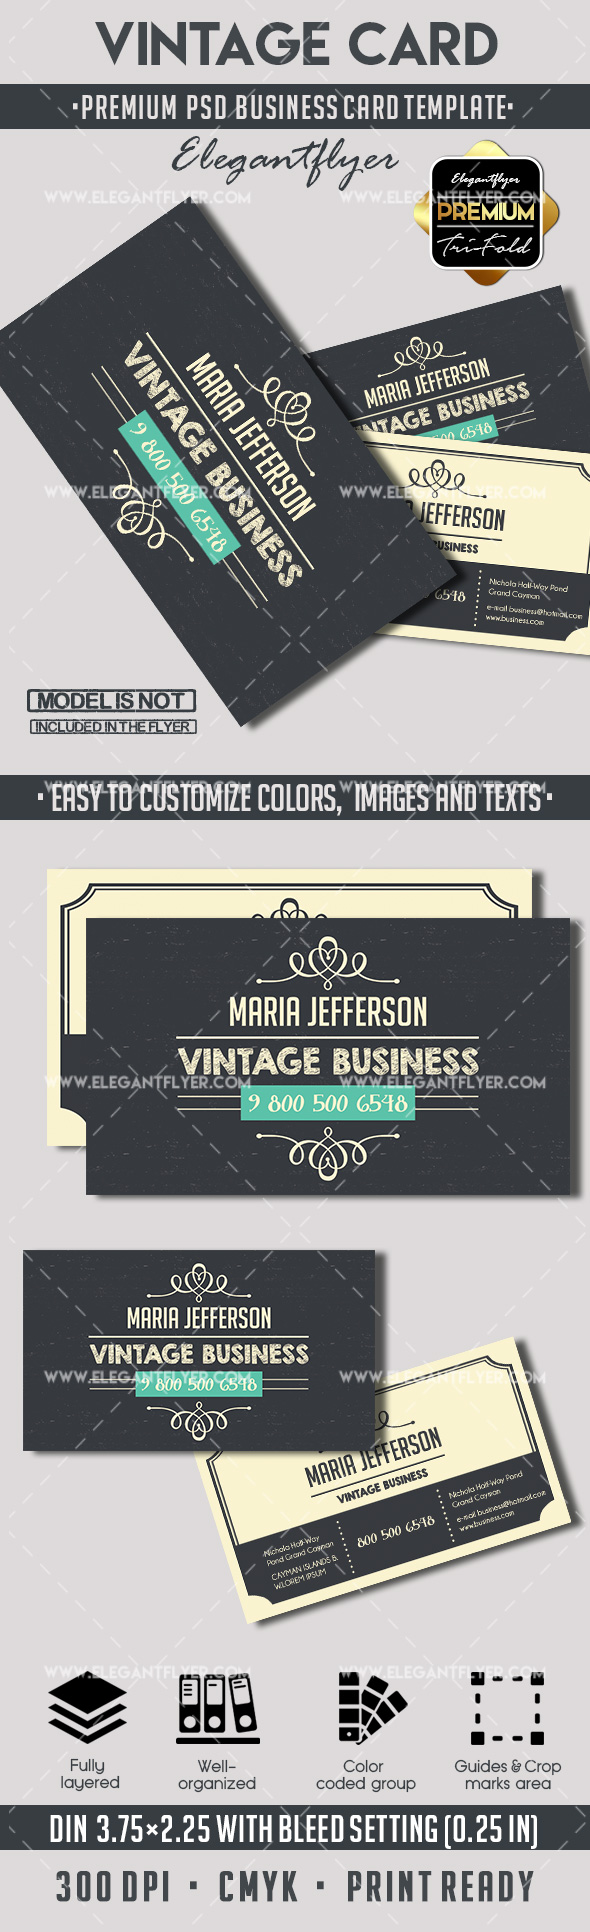 Vintage – Premium Business card PSD Template